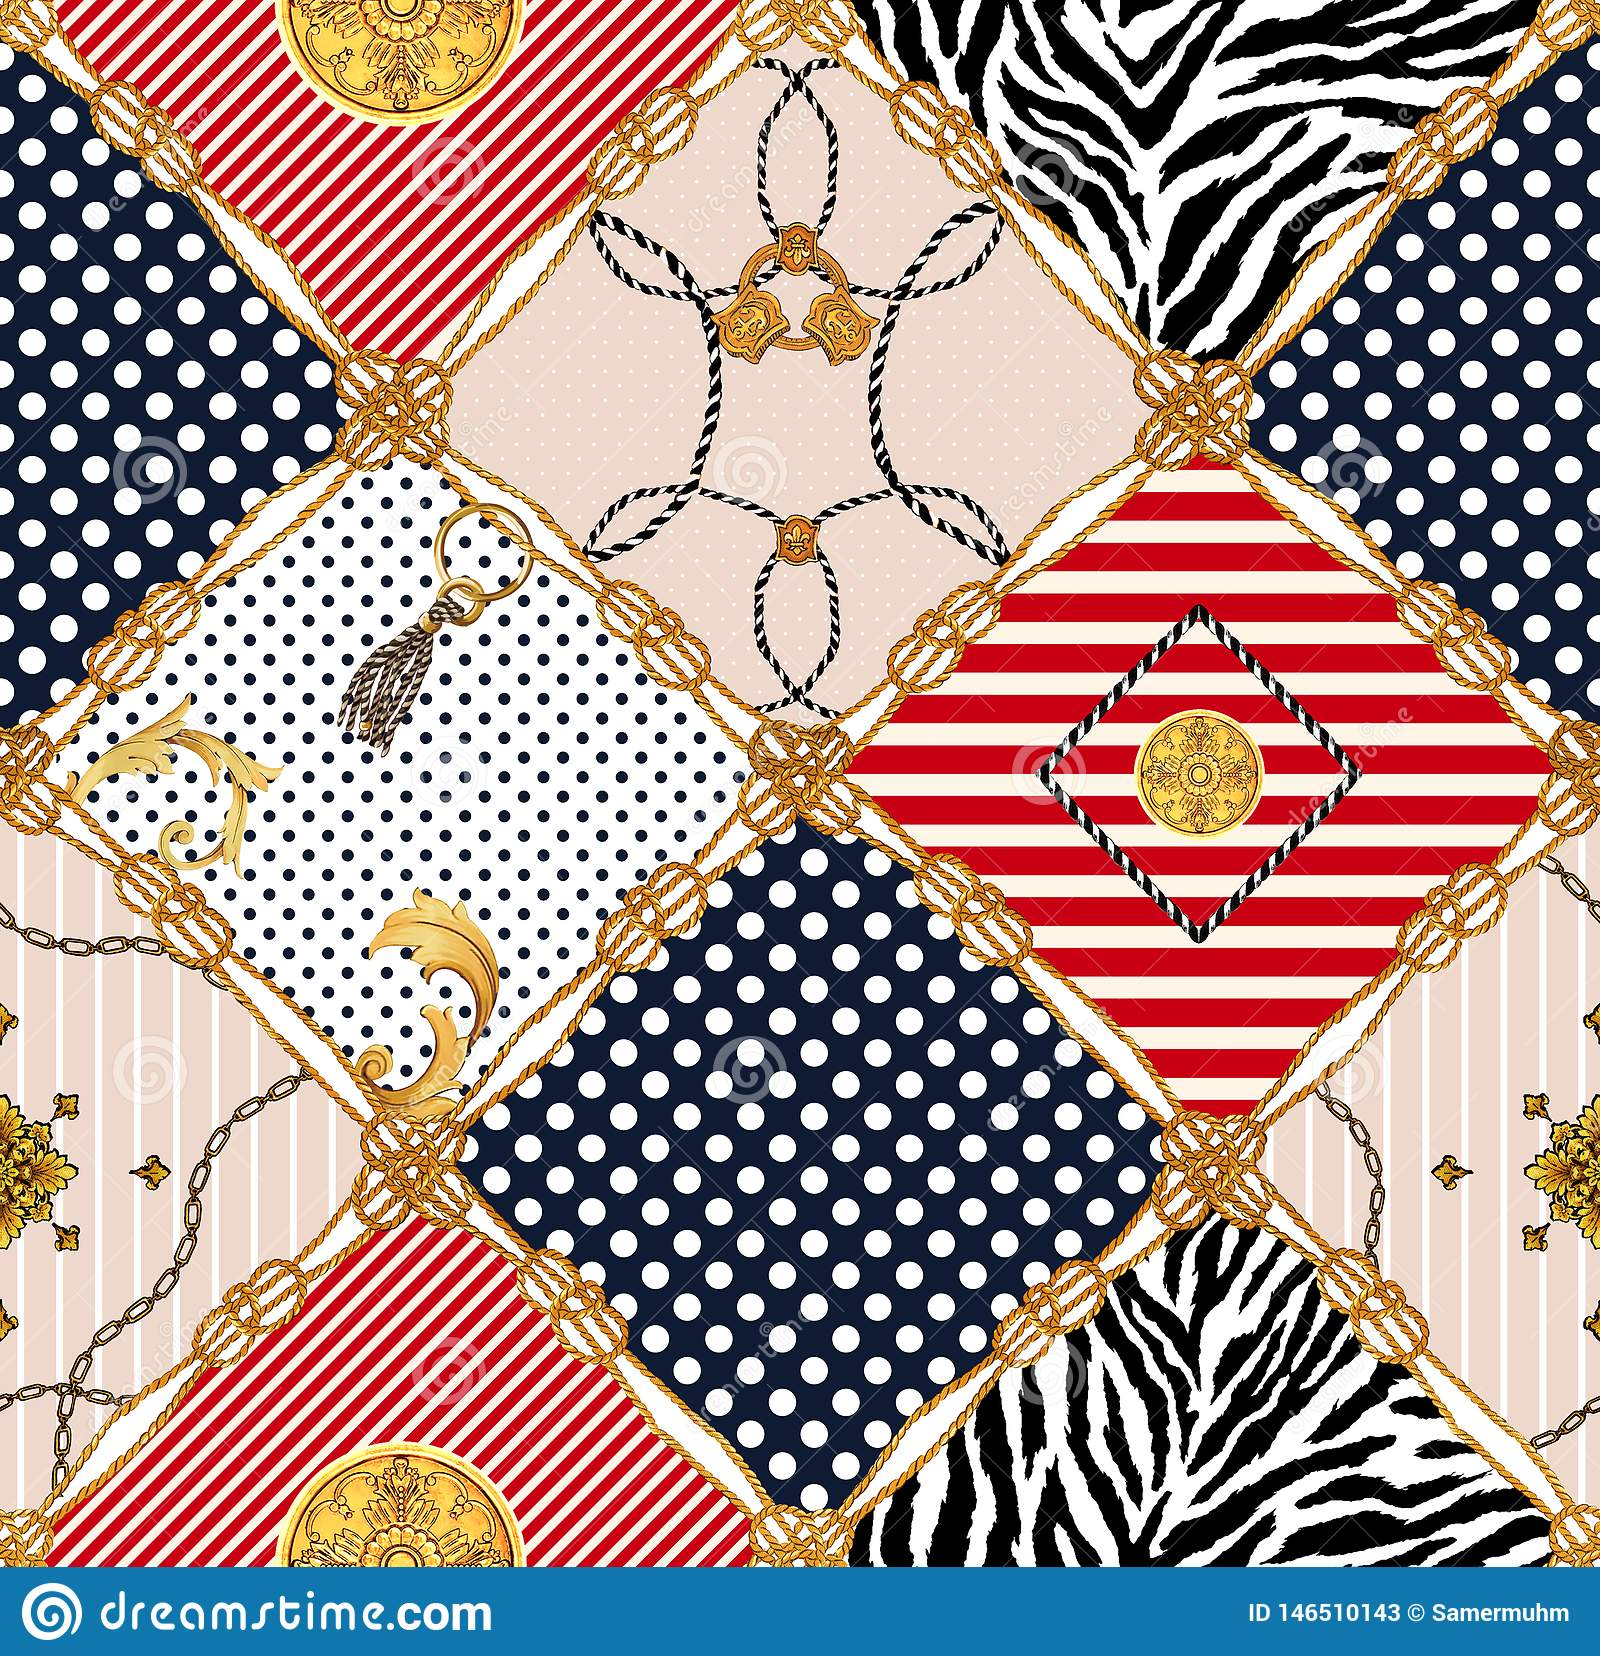 Seamless pattern, colored background, Golden rope with colored diamond shapes.